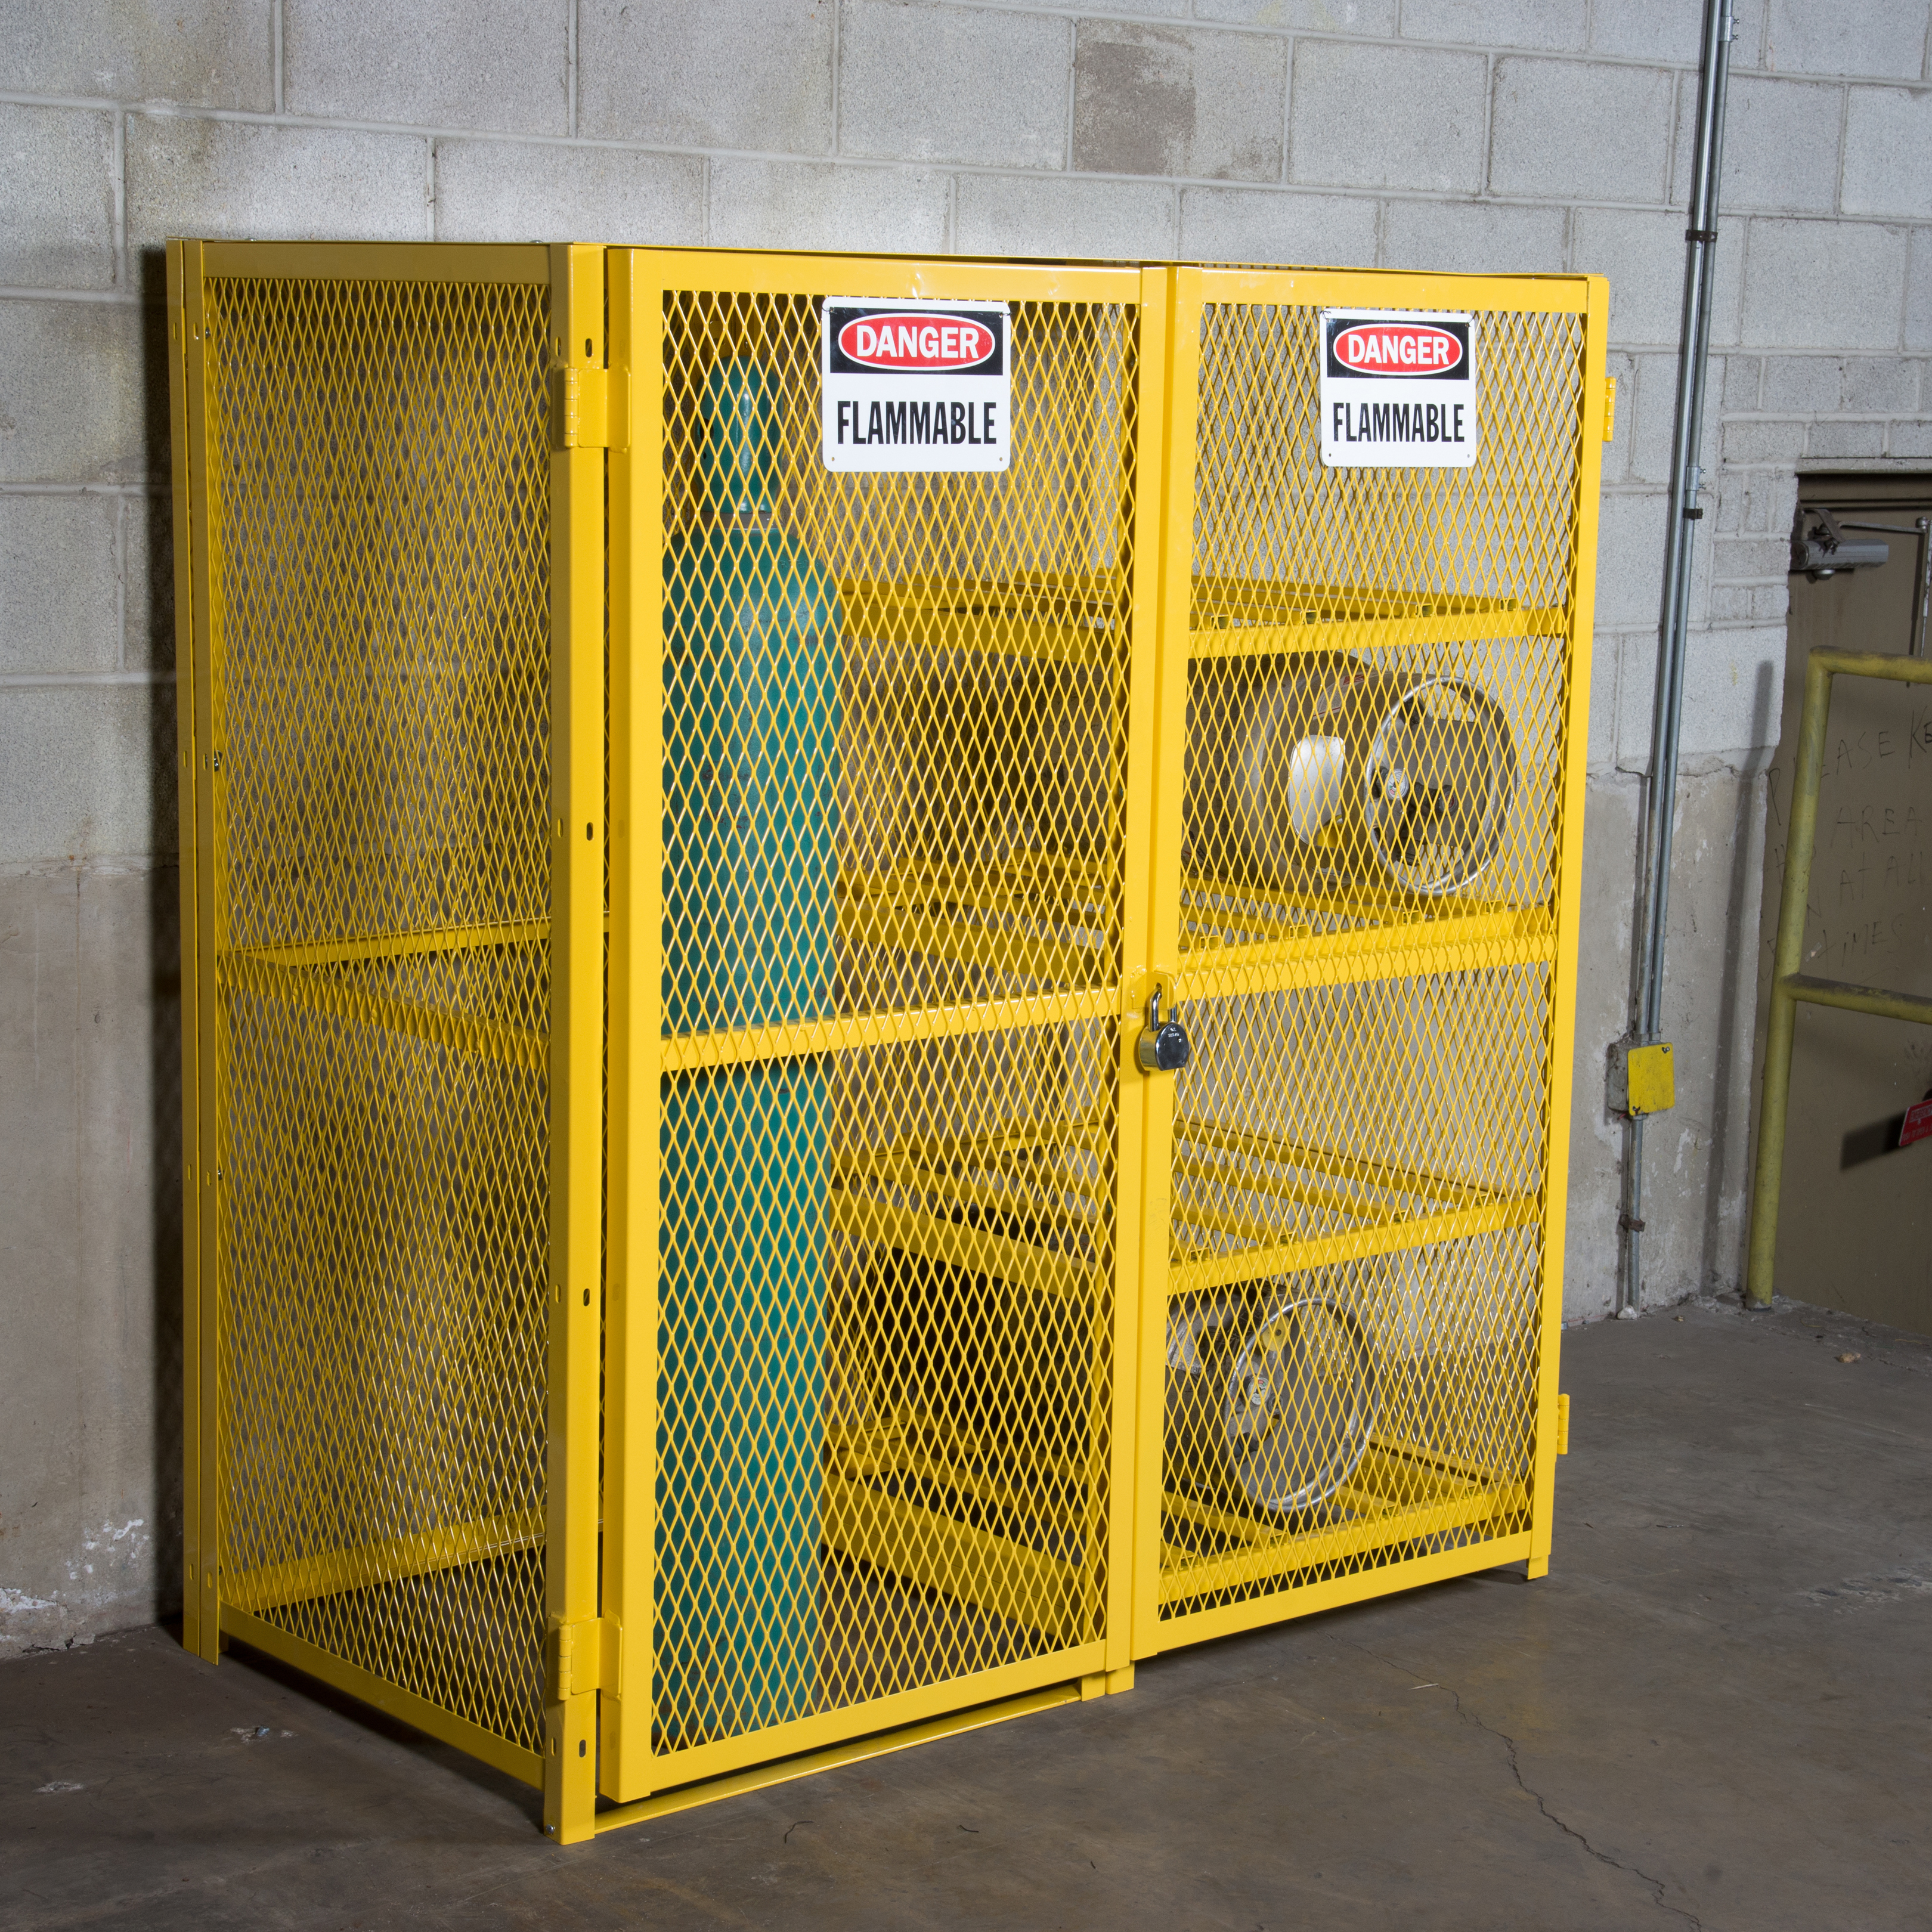 NEW Product: Saf T Gas™ Cabinet